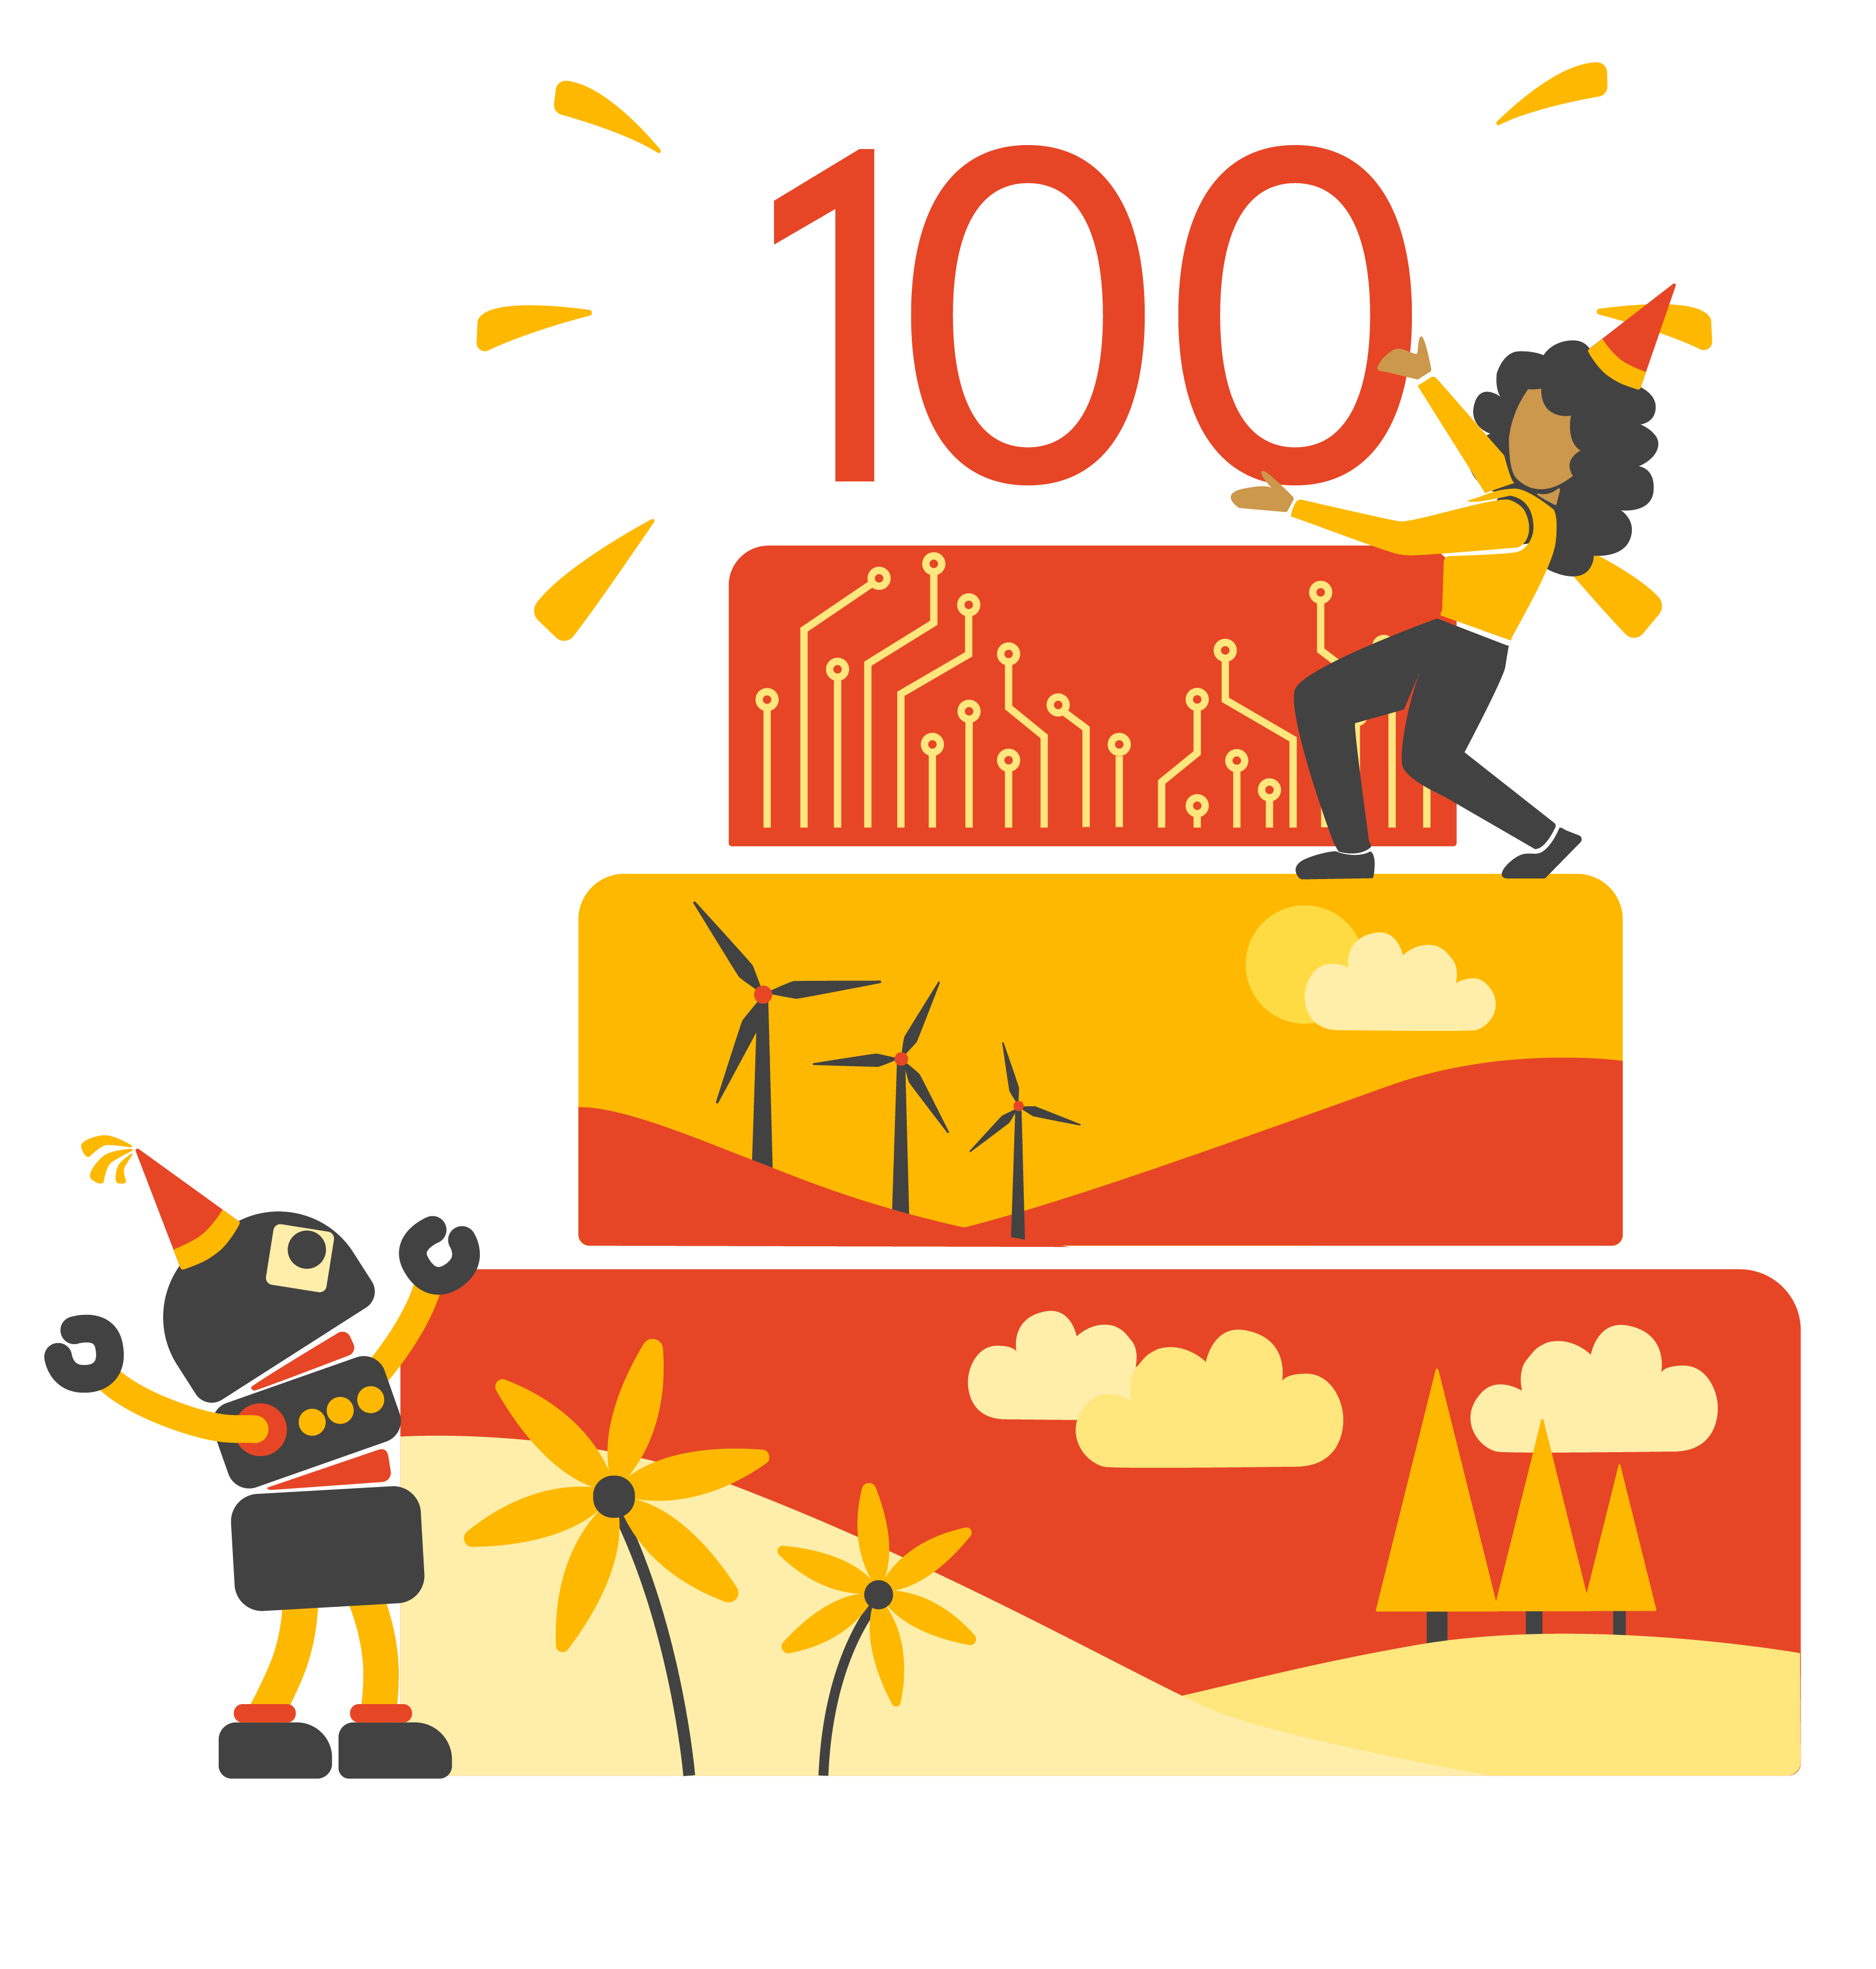 Image of a birthday with 100 at top to signify the 100 podcasts Sydney Business Insights has produced